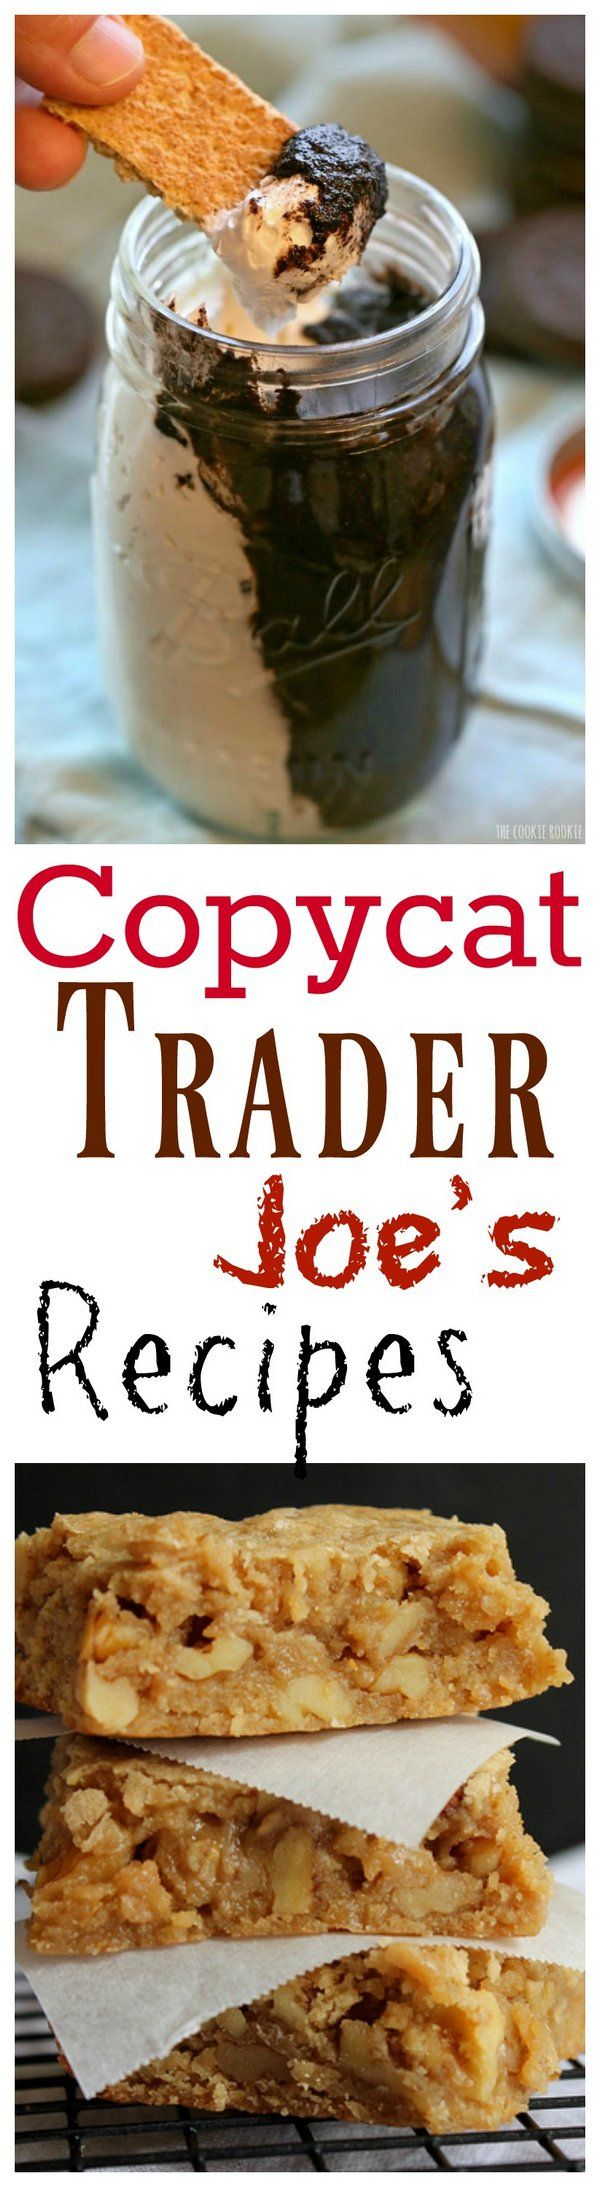 16 Delicious Copycat Trader Joe's Recipes You Can Make at home!